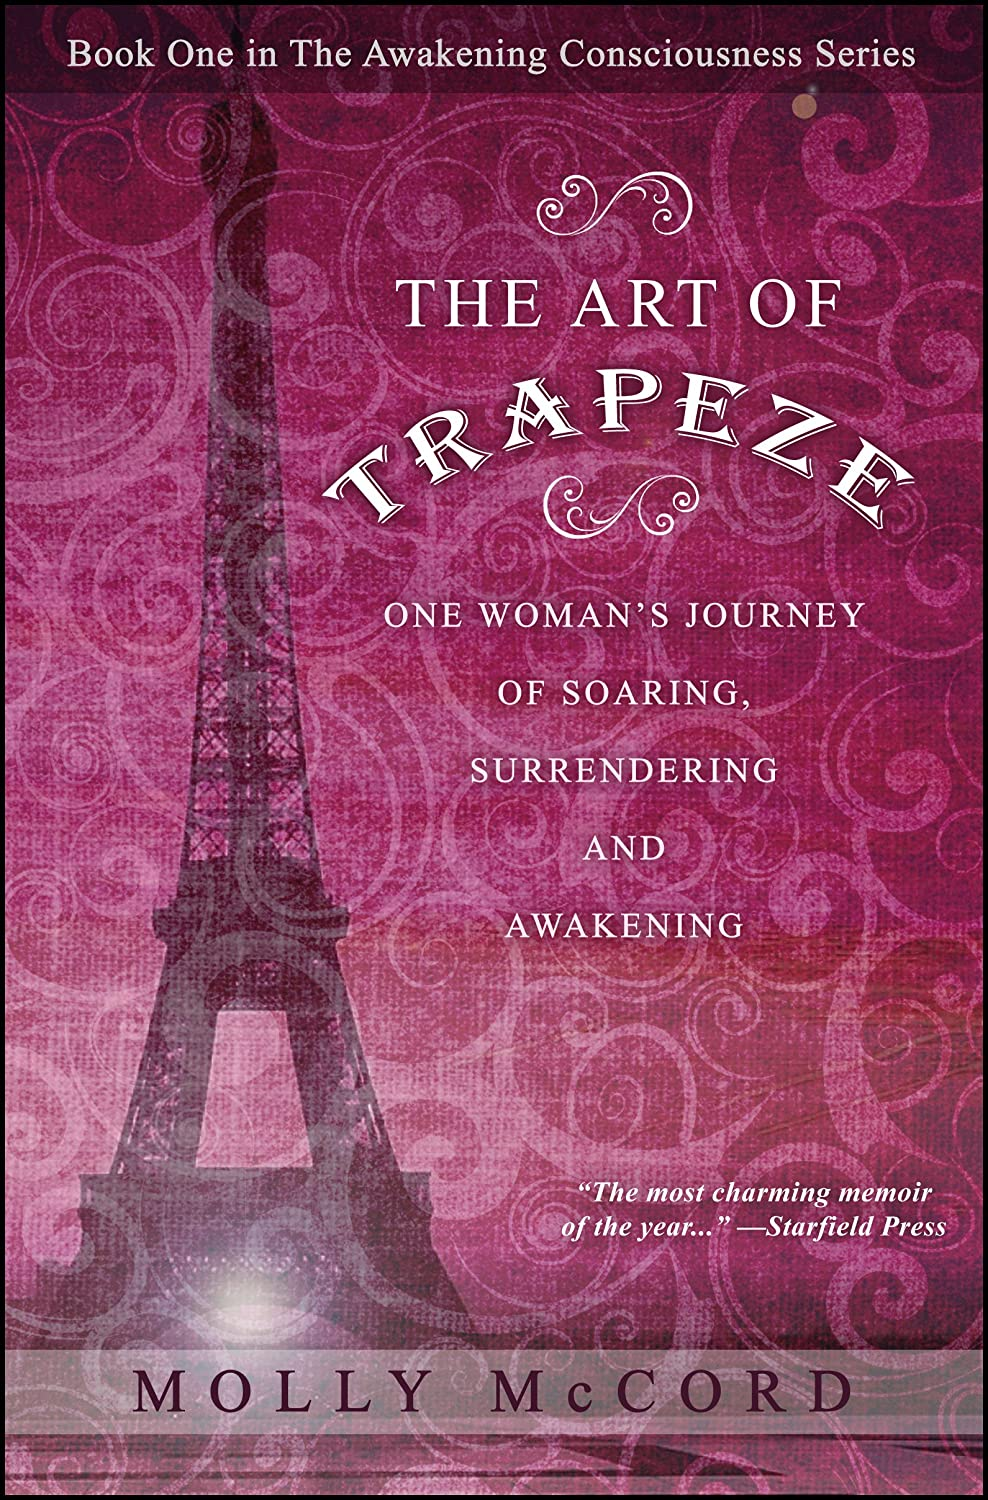 The-Art-of-Trapeze-by-Molly-McCord-Amazon-Bestseller